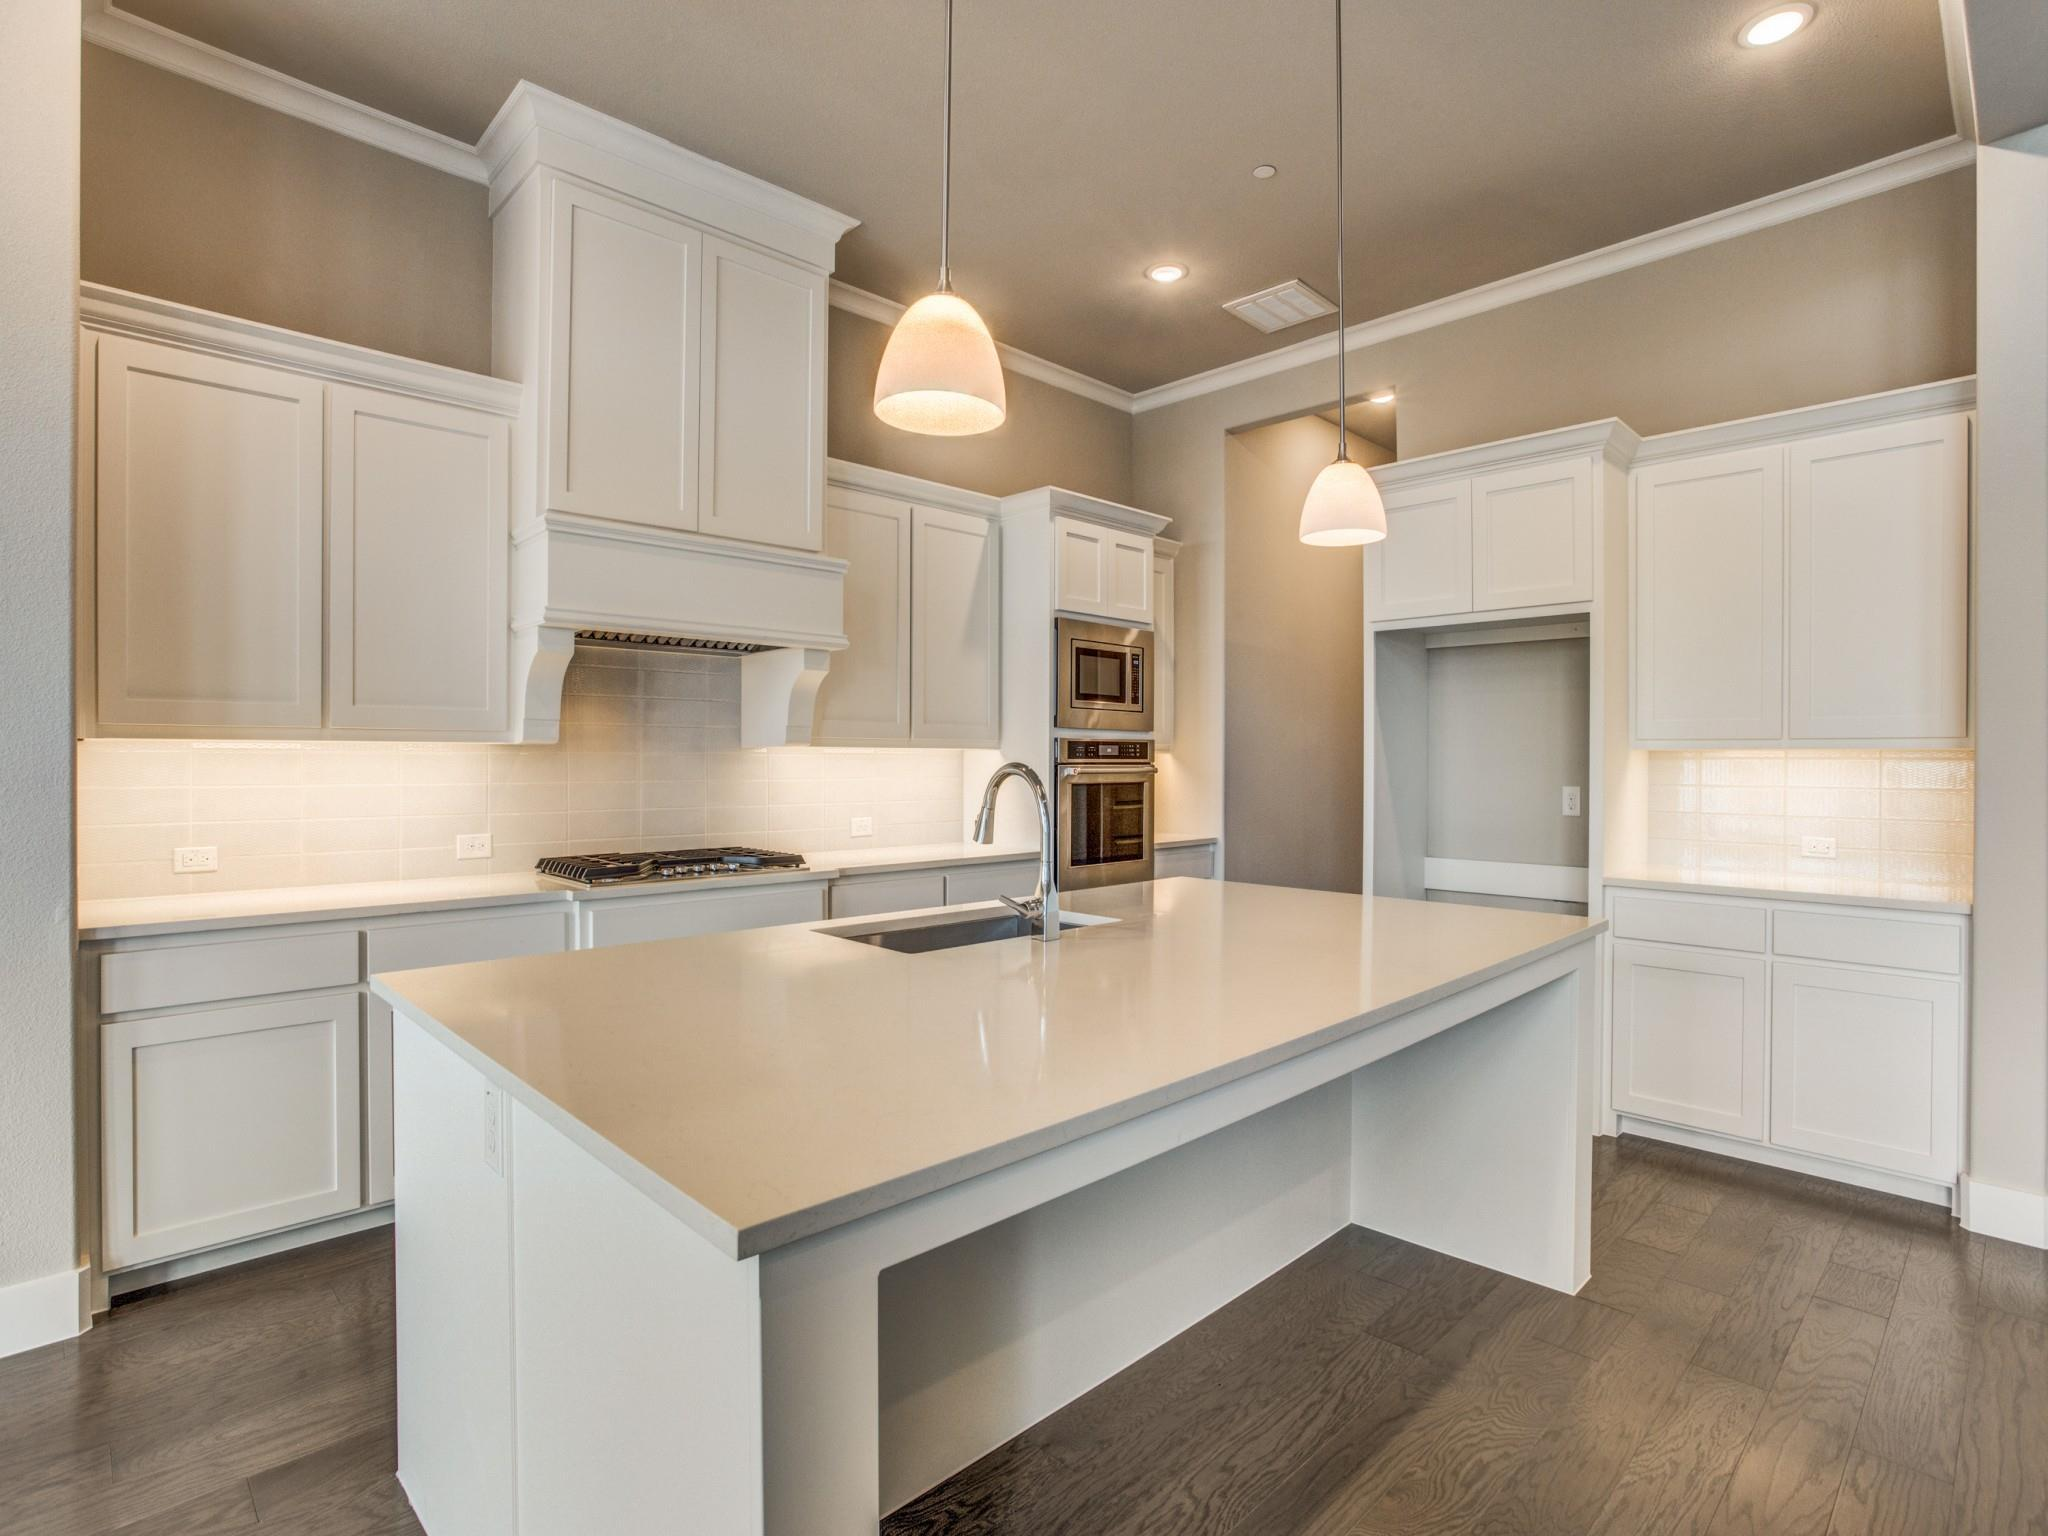 Kitchen featured in The Uvalde | 60104.1 By Southgate Homes in Dallas, TX